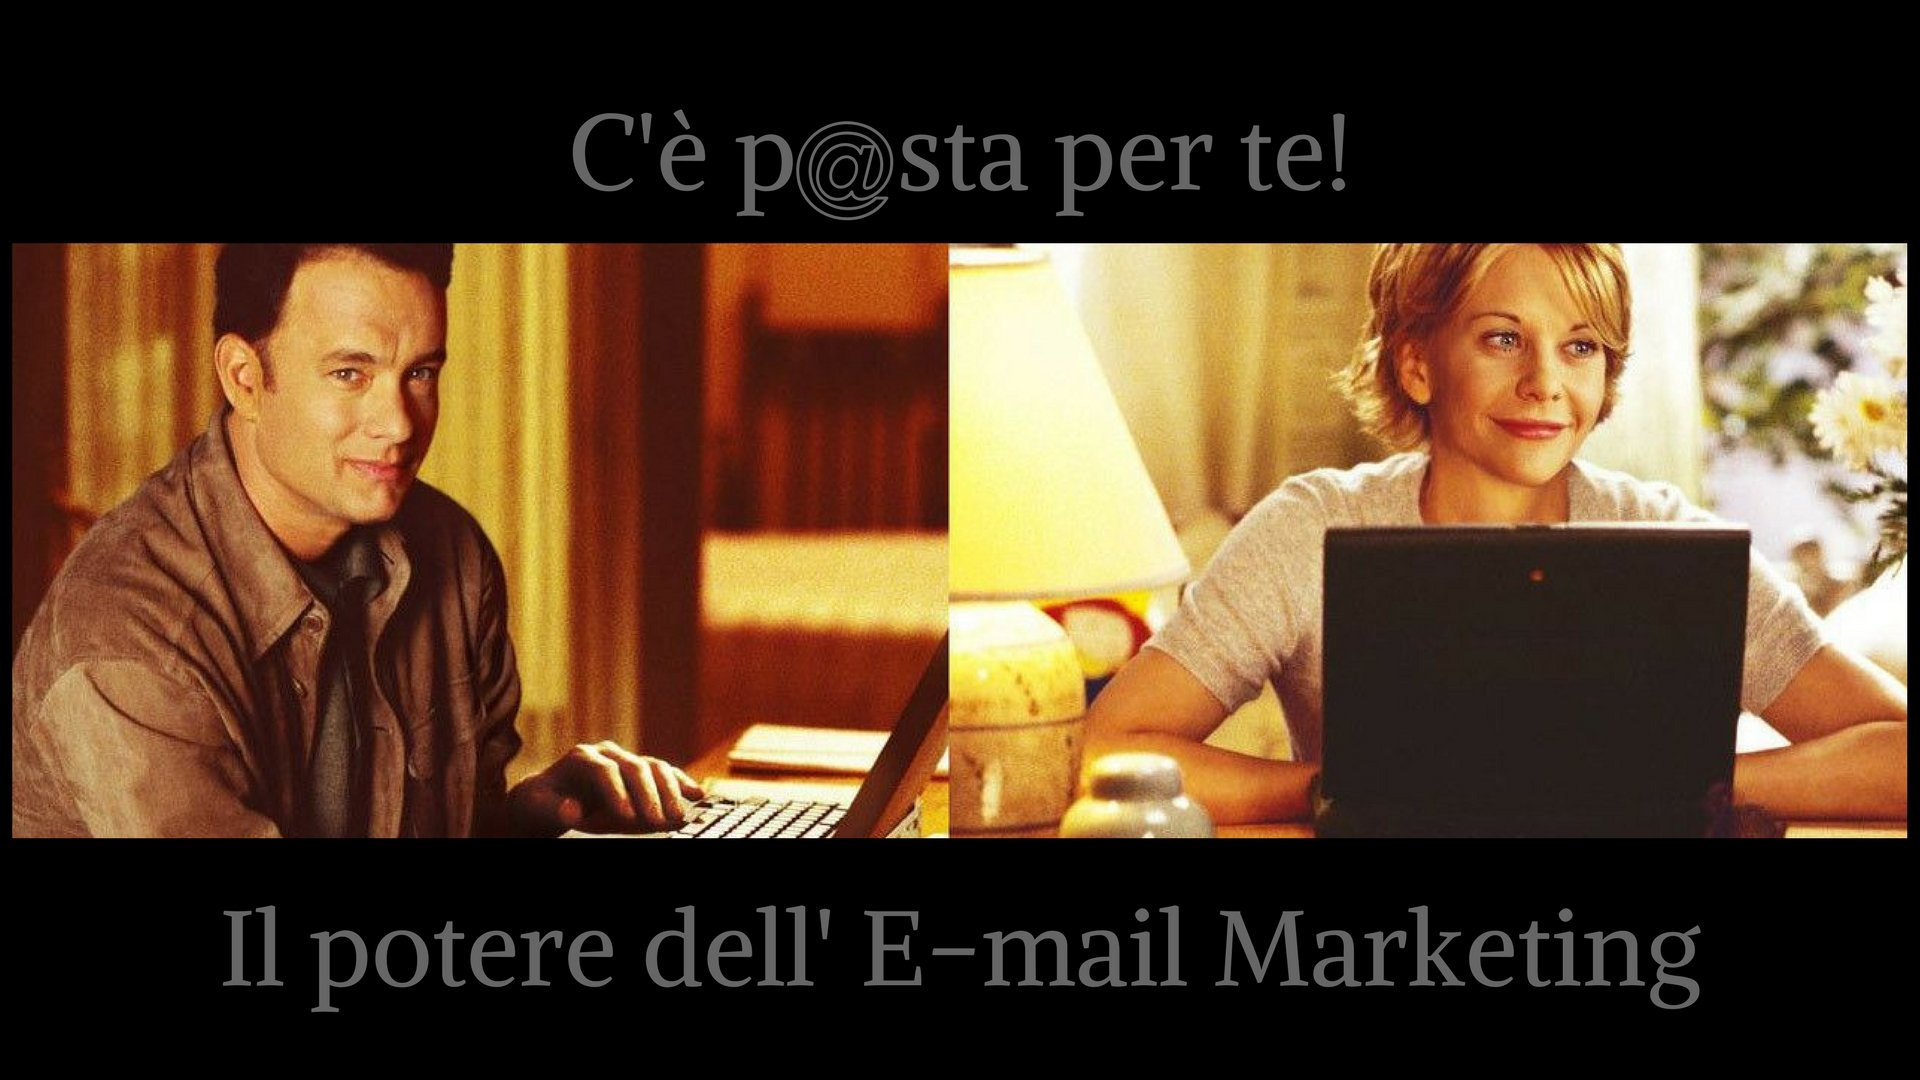 E-mail Marketing: strumento potente da non sottovalutare